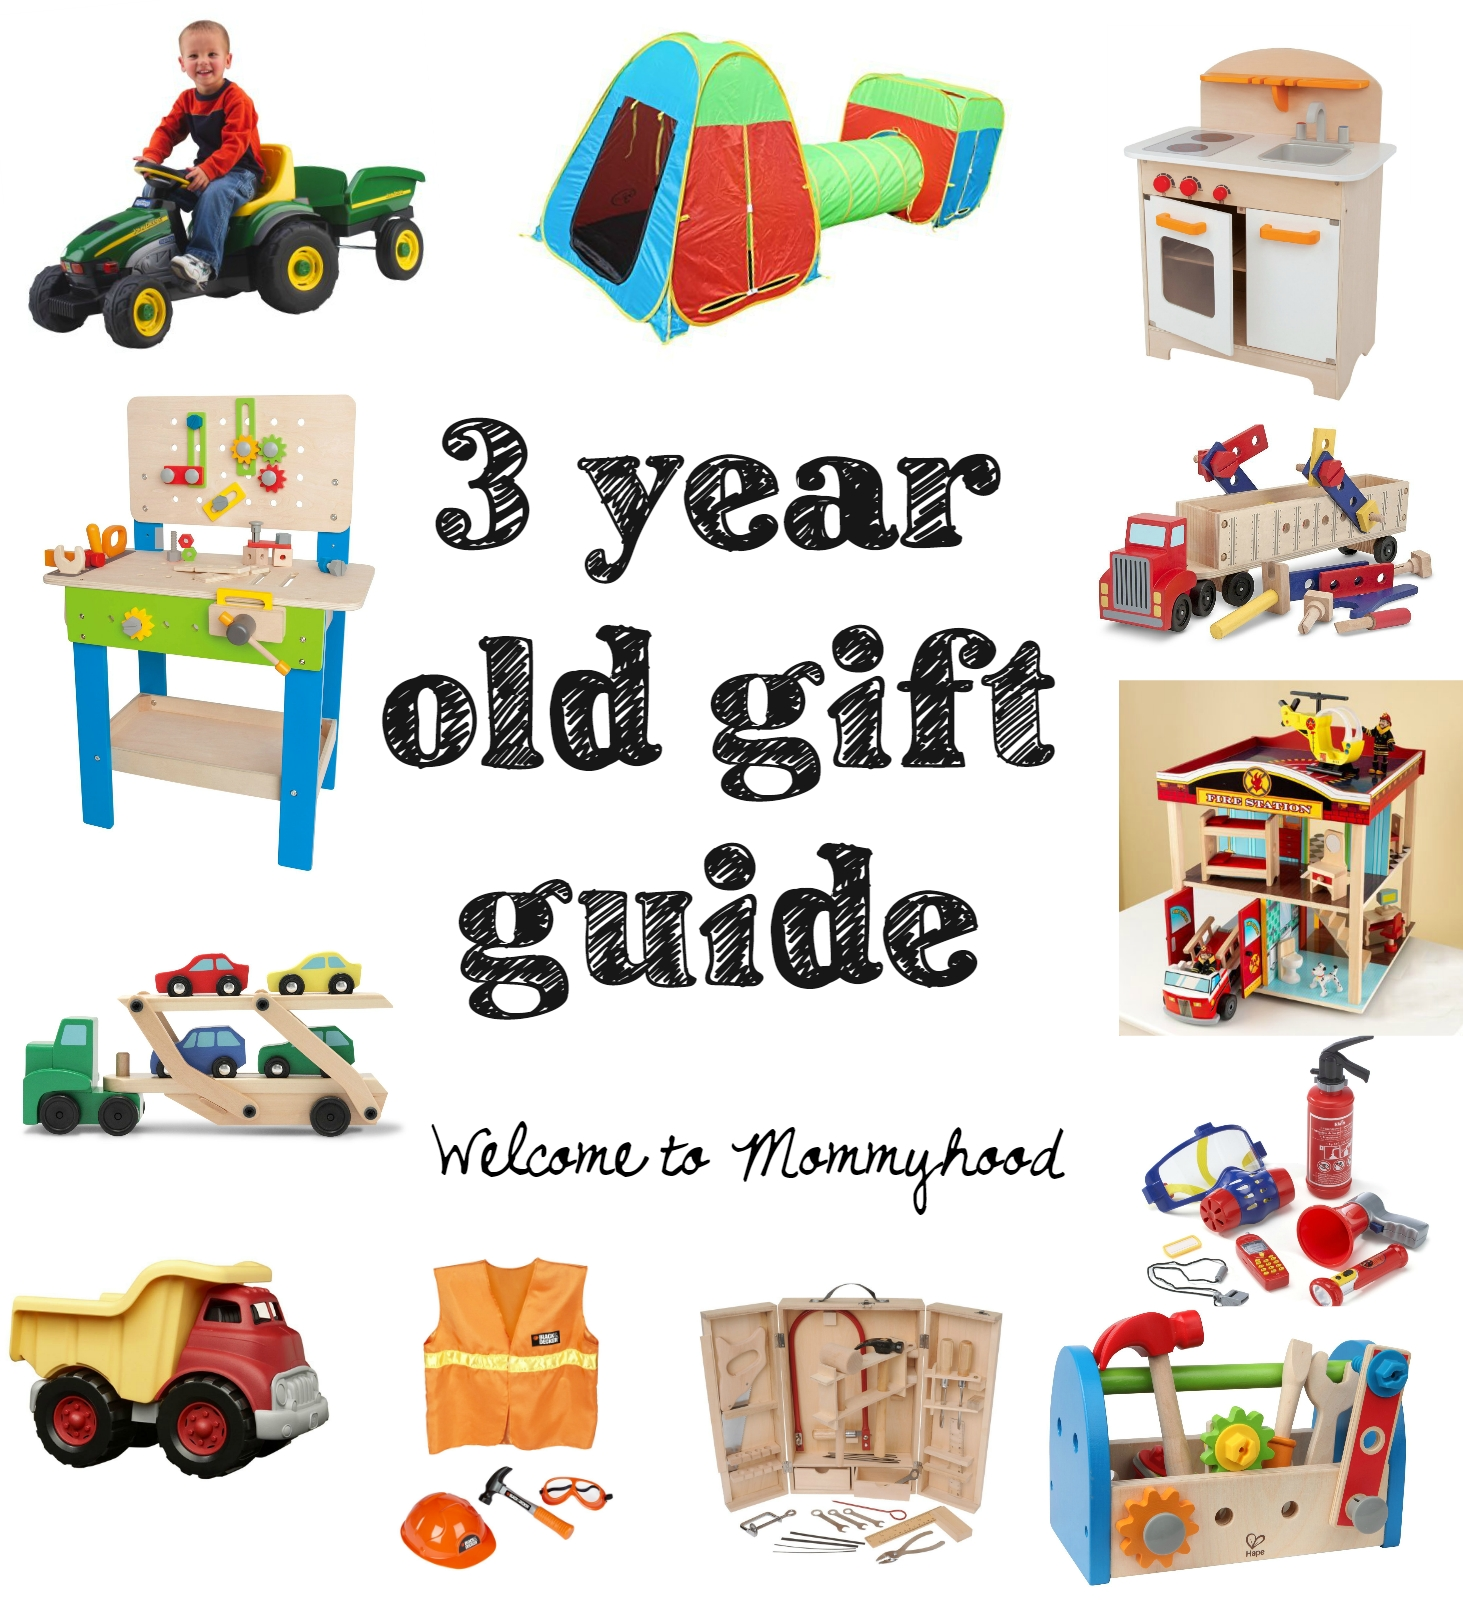 10 best gift ideas for 2 year old daughter christmas present ideas 6 yr old girl